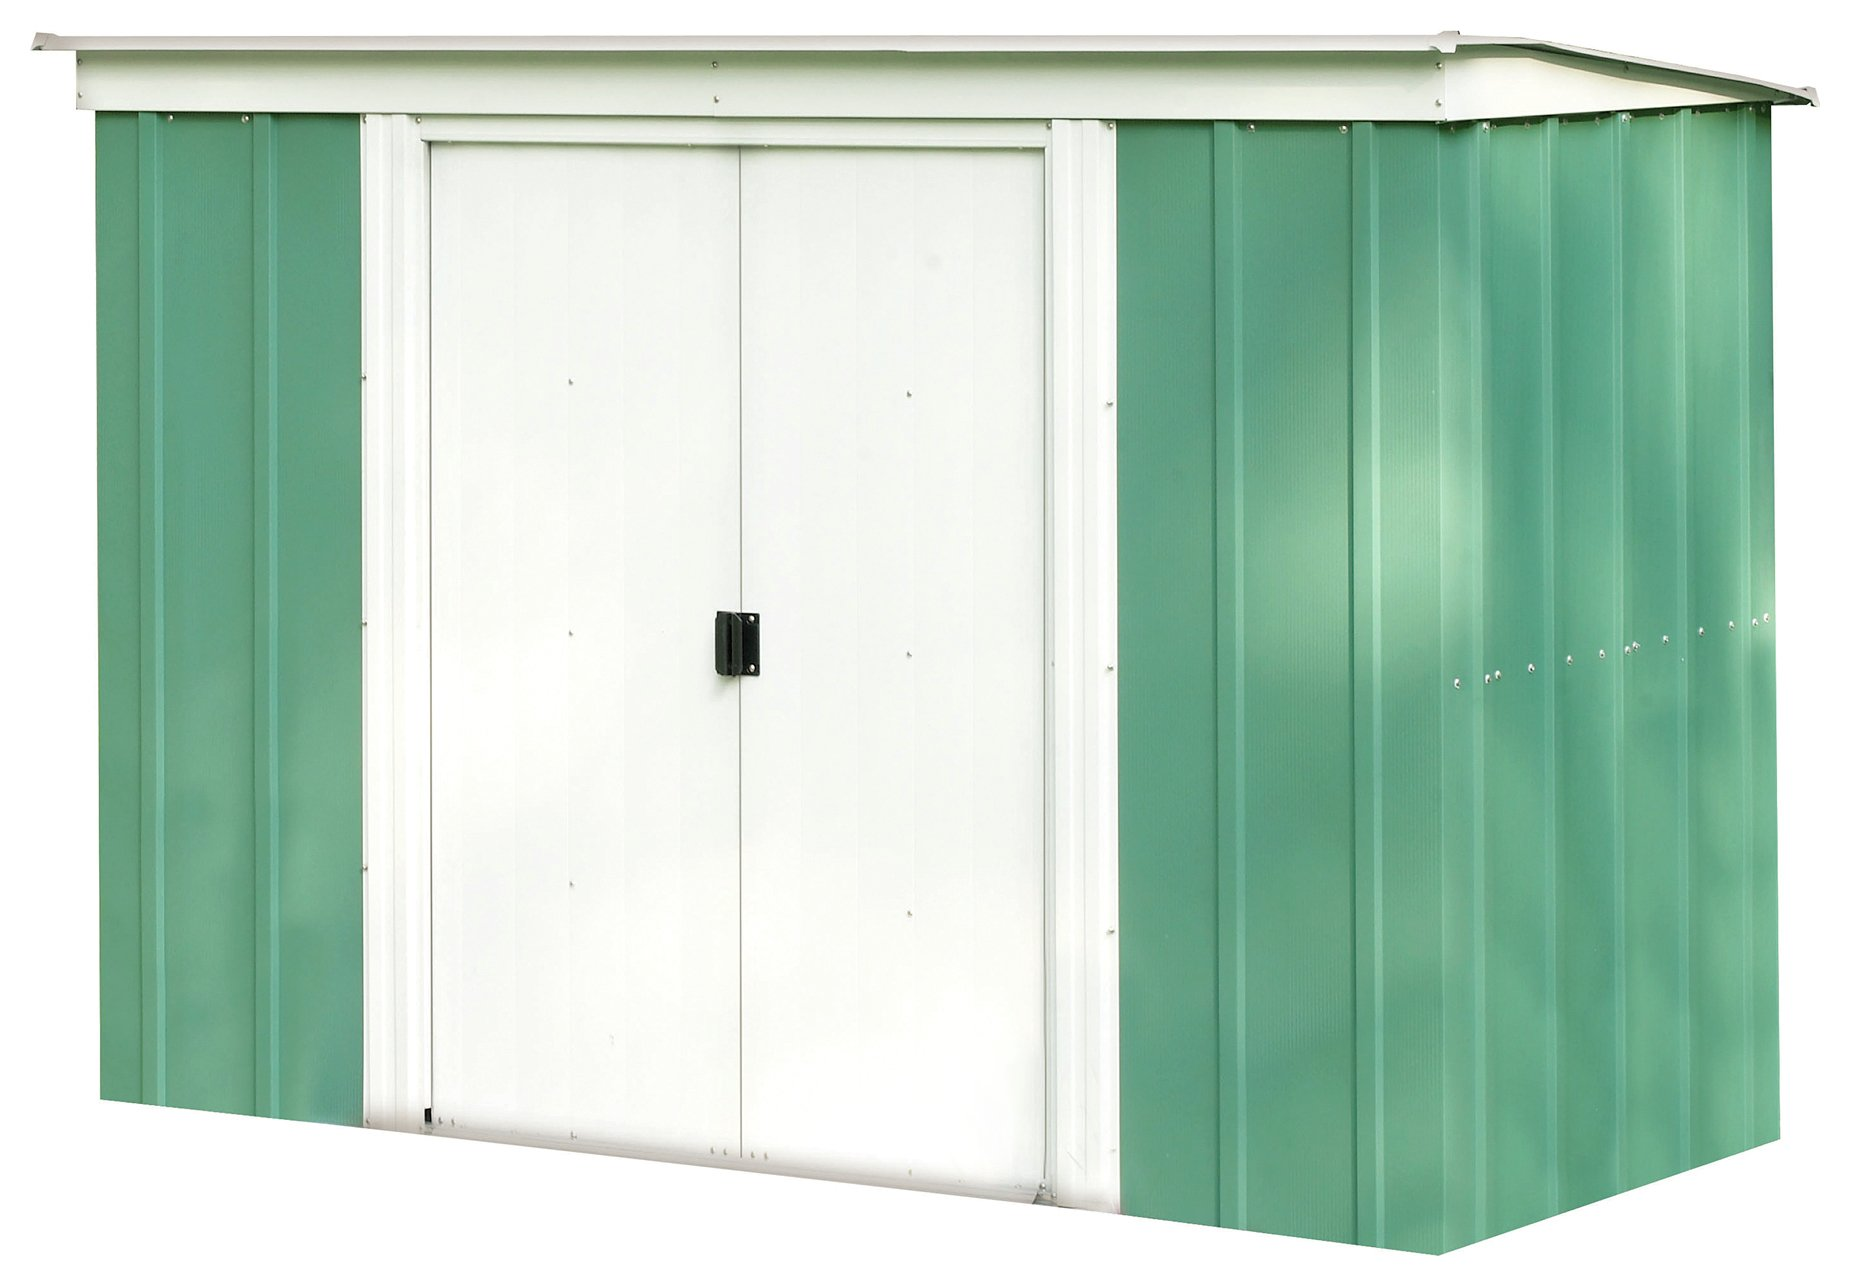 Arrow Metal Garden Shed - 8 x 4ft at Argos from Arrow